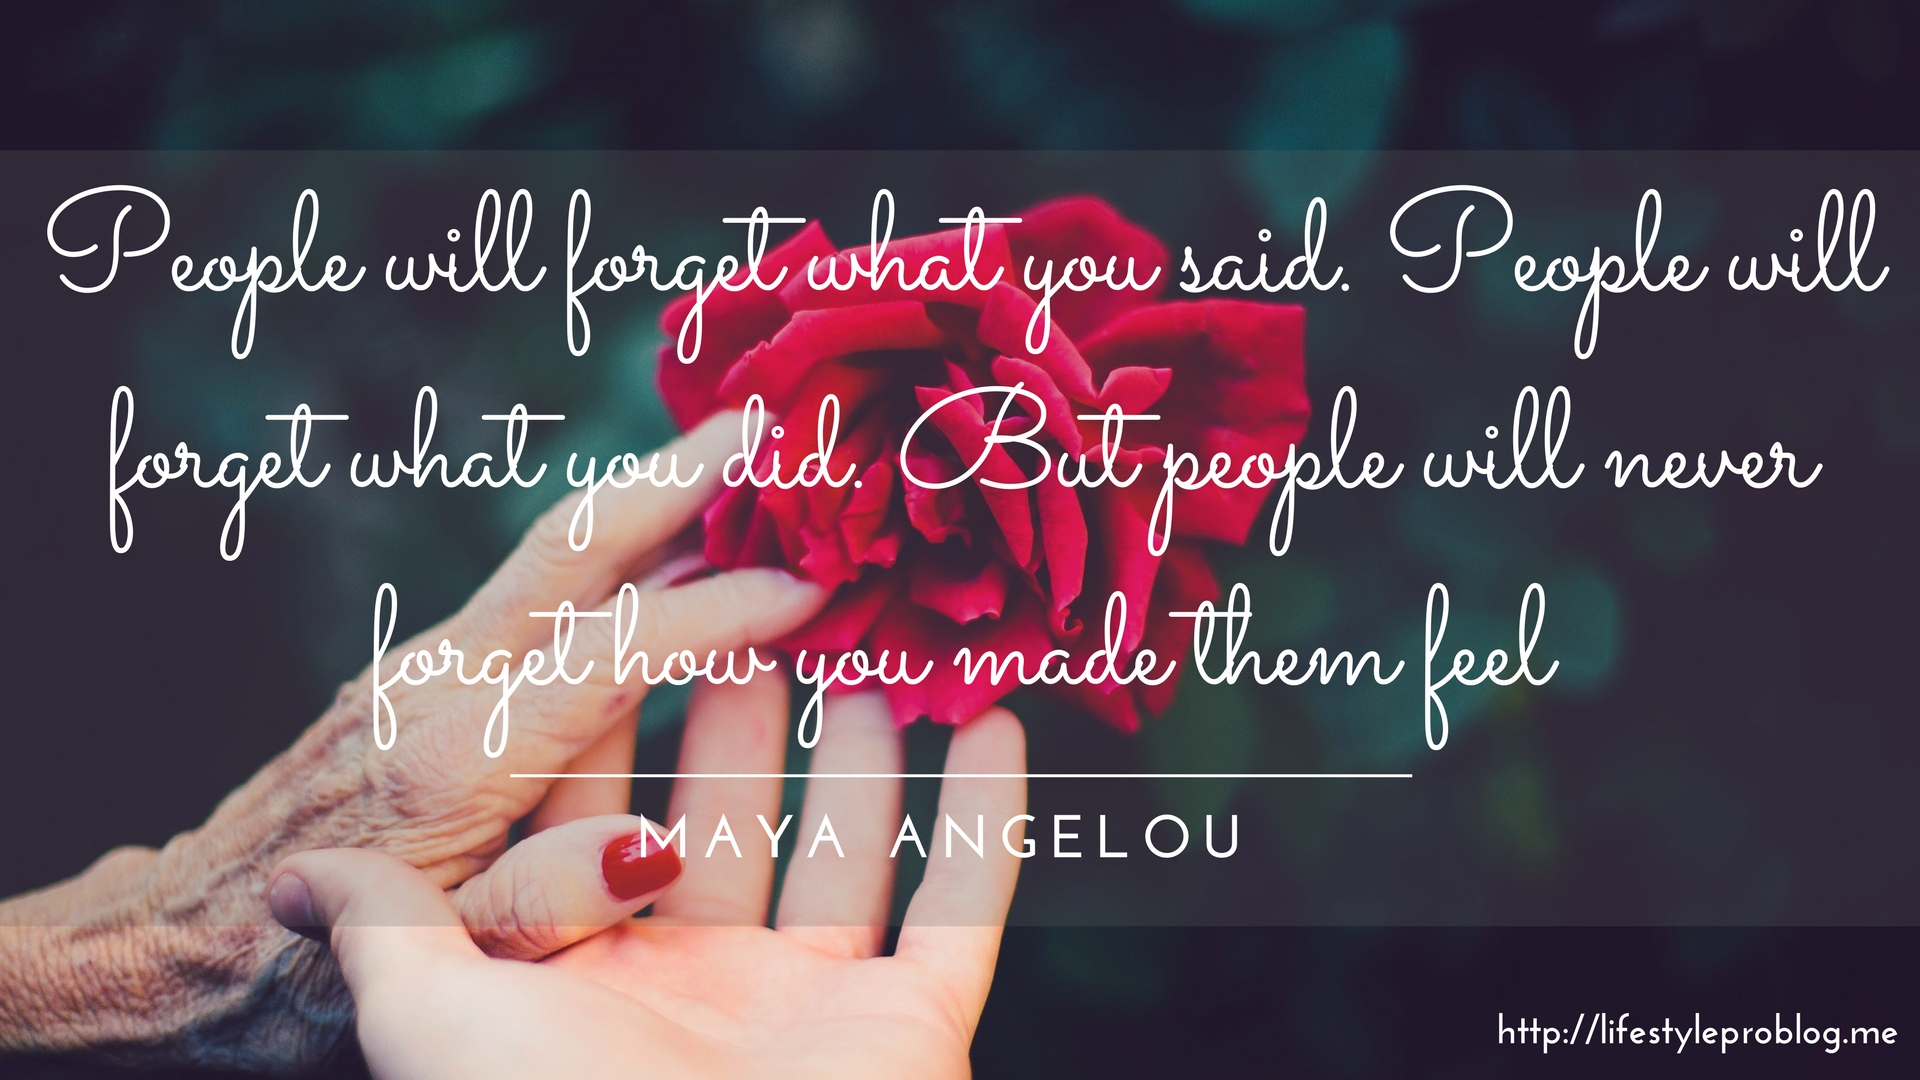 #AtoZChallenge : Maya Angelou Quote